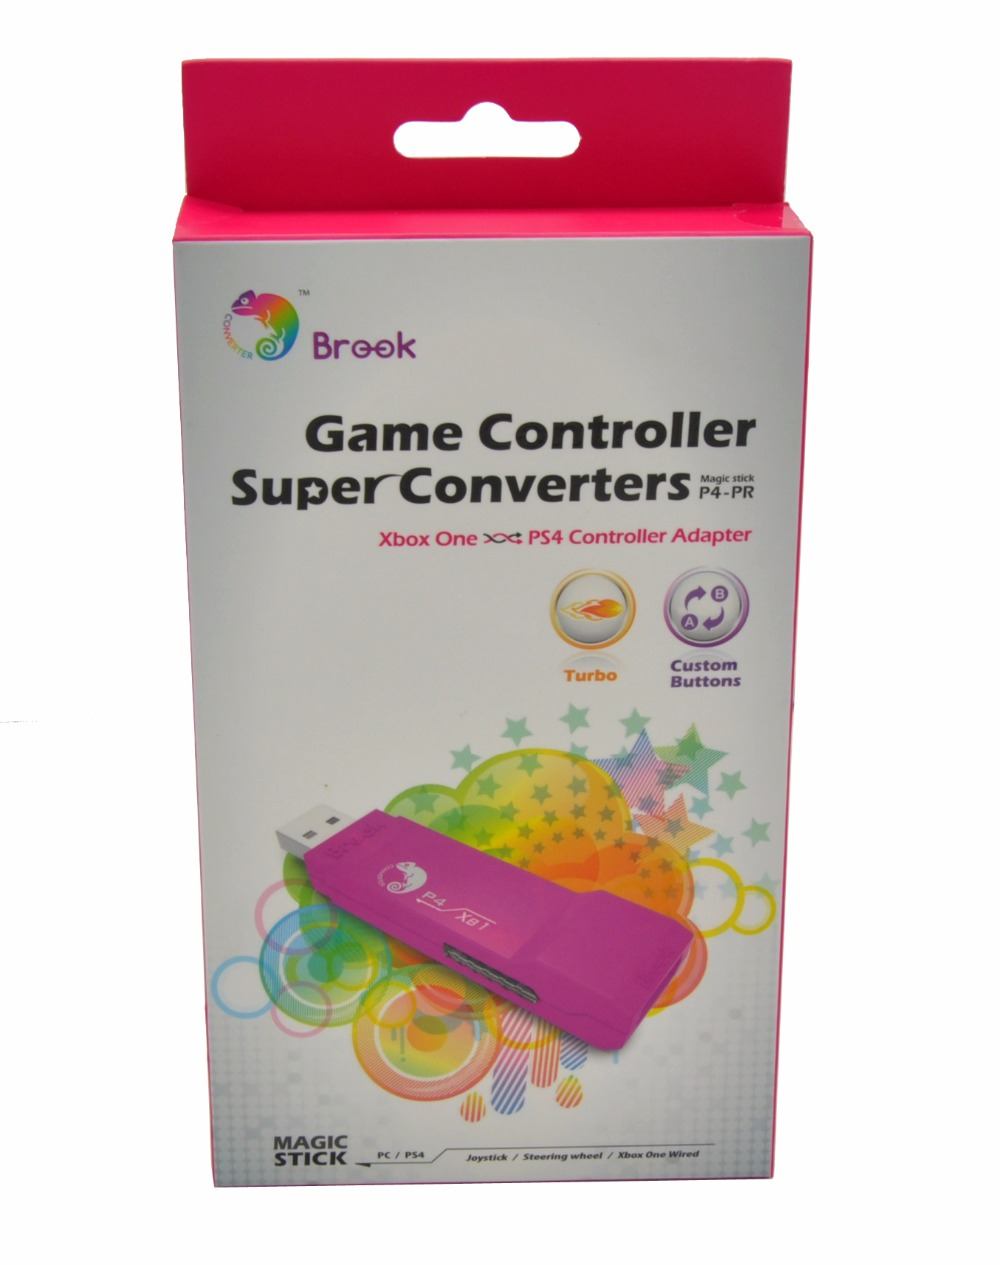 Brook USB Game Converter for Xbox ONE to PS4 Controller Converter Adapter use XBOXONE Wired Gamepad